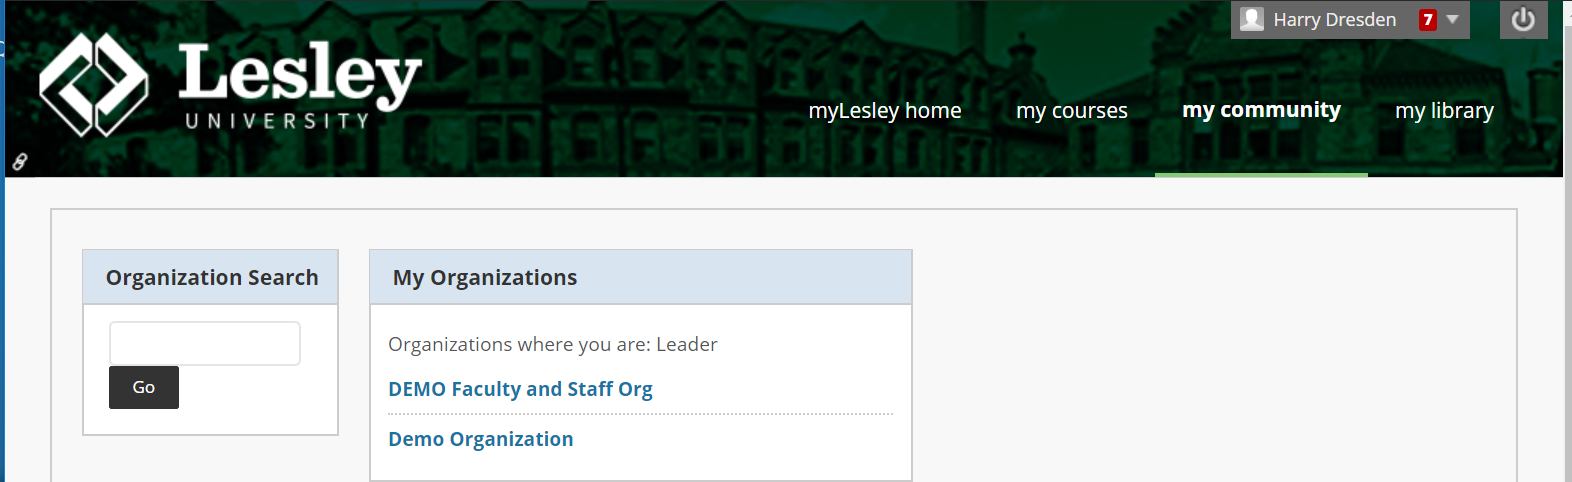 screenshot of myLesley community tab